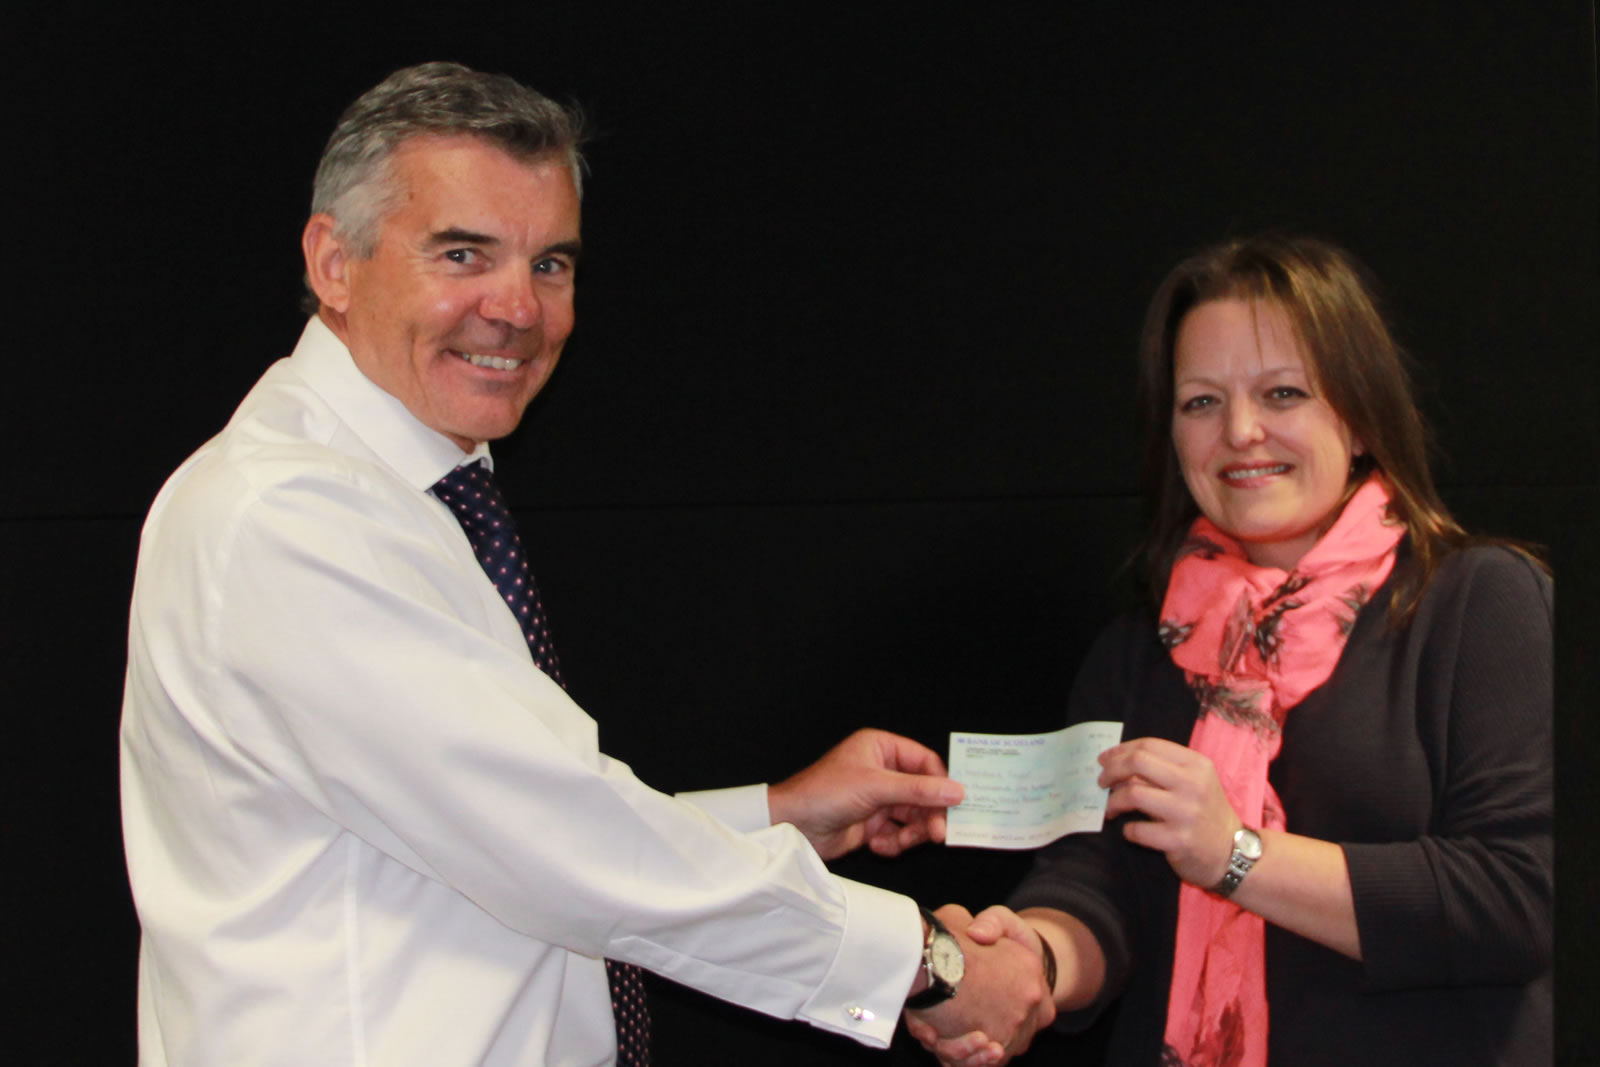 SVS's 20th Anniversary Celebration raises £1,123.75 for Aberdeen Foyer